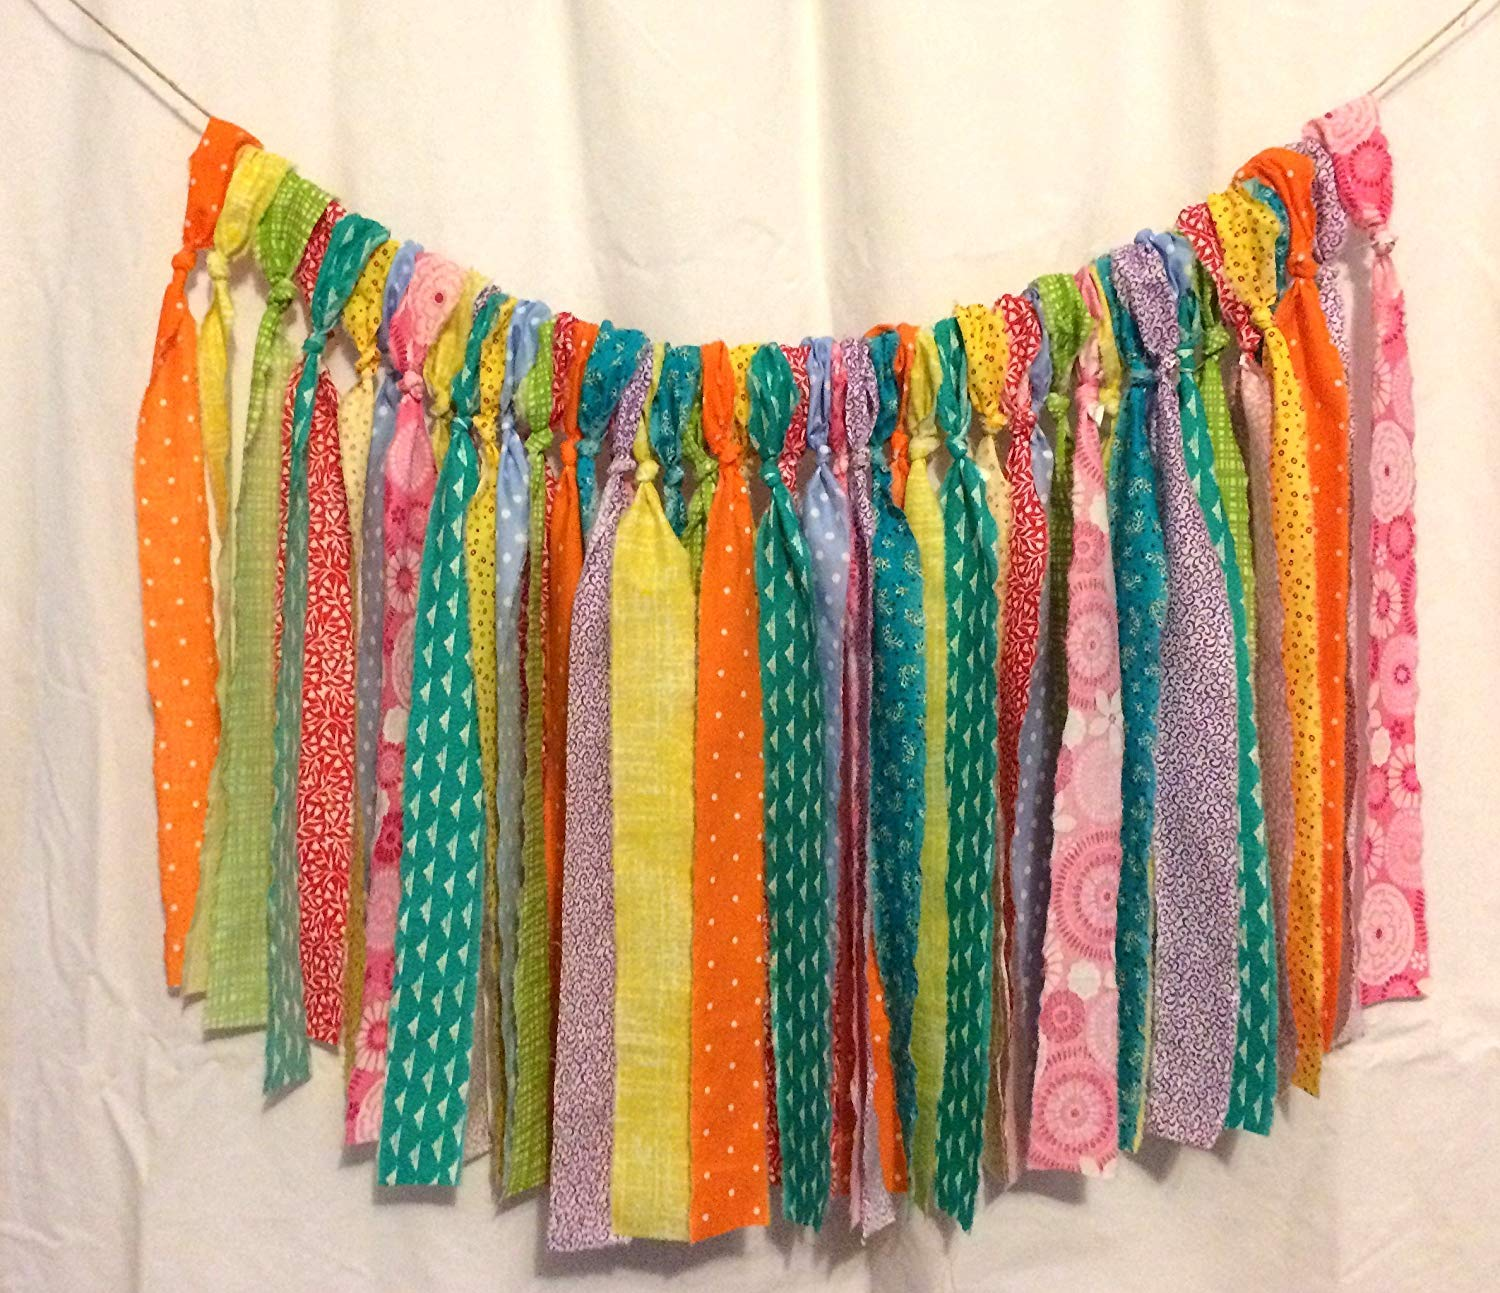 Multi Color Hippie Valance Curtains (RV, Camper, Glamping, Van, Colorful Banner, Party Decor, Highchair Banner, Photo Prop, Wall Decor, Mantle)